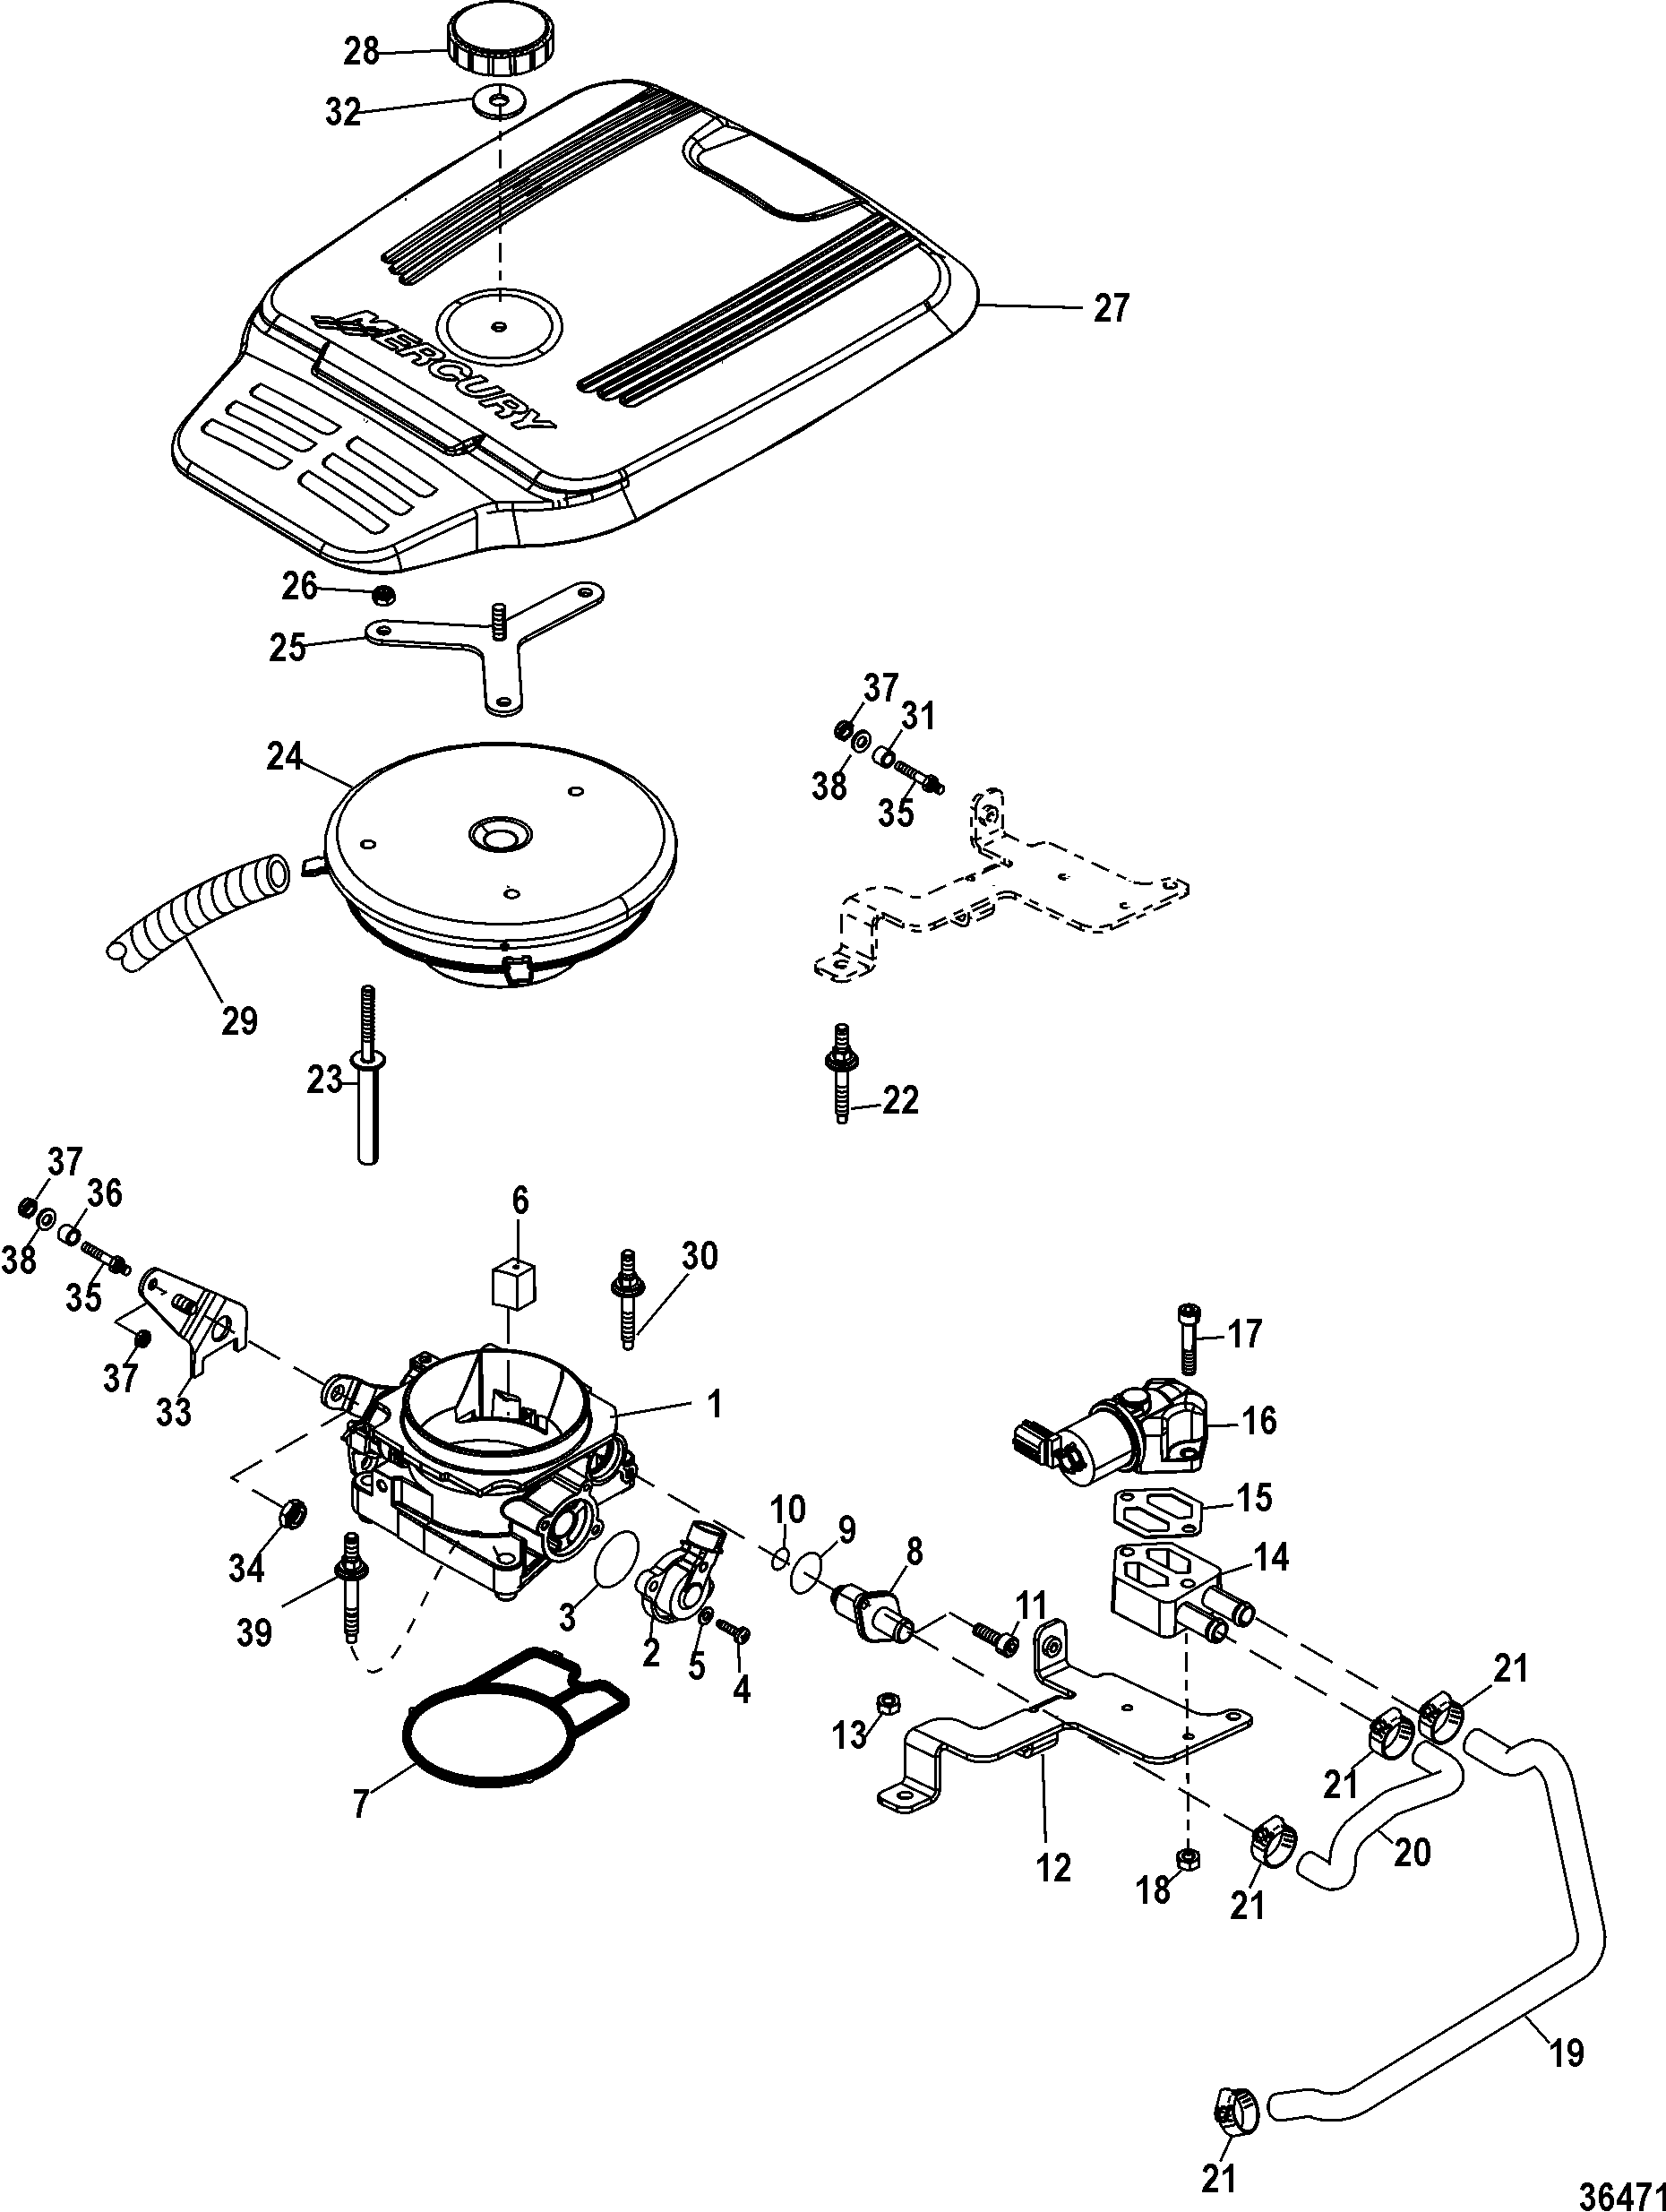 mercruiser fuel system diagram 1995 ford 7 3 fuel system diagram throttle body for mercruiser 4.3l mpi alpha/bravo #14